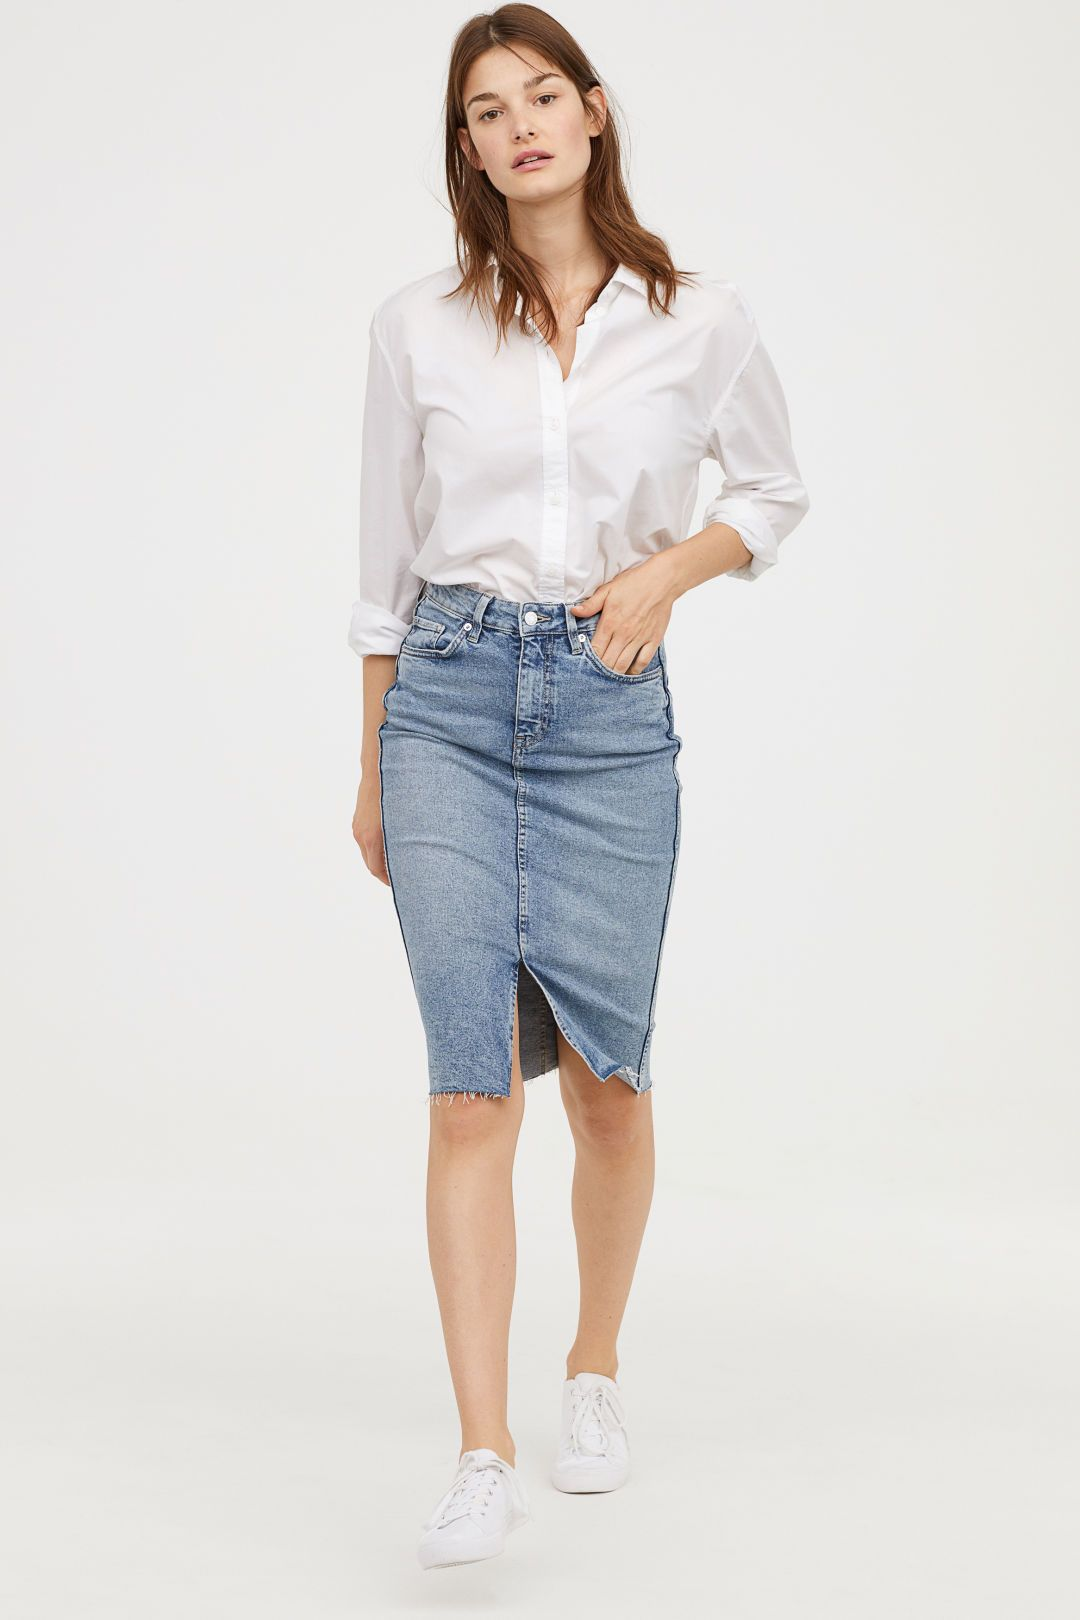 e0b42990297c H&M Knee-length Denim Skirt - Blue in 2019 | Style | Denim skirt ...